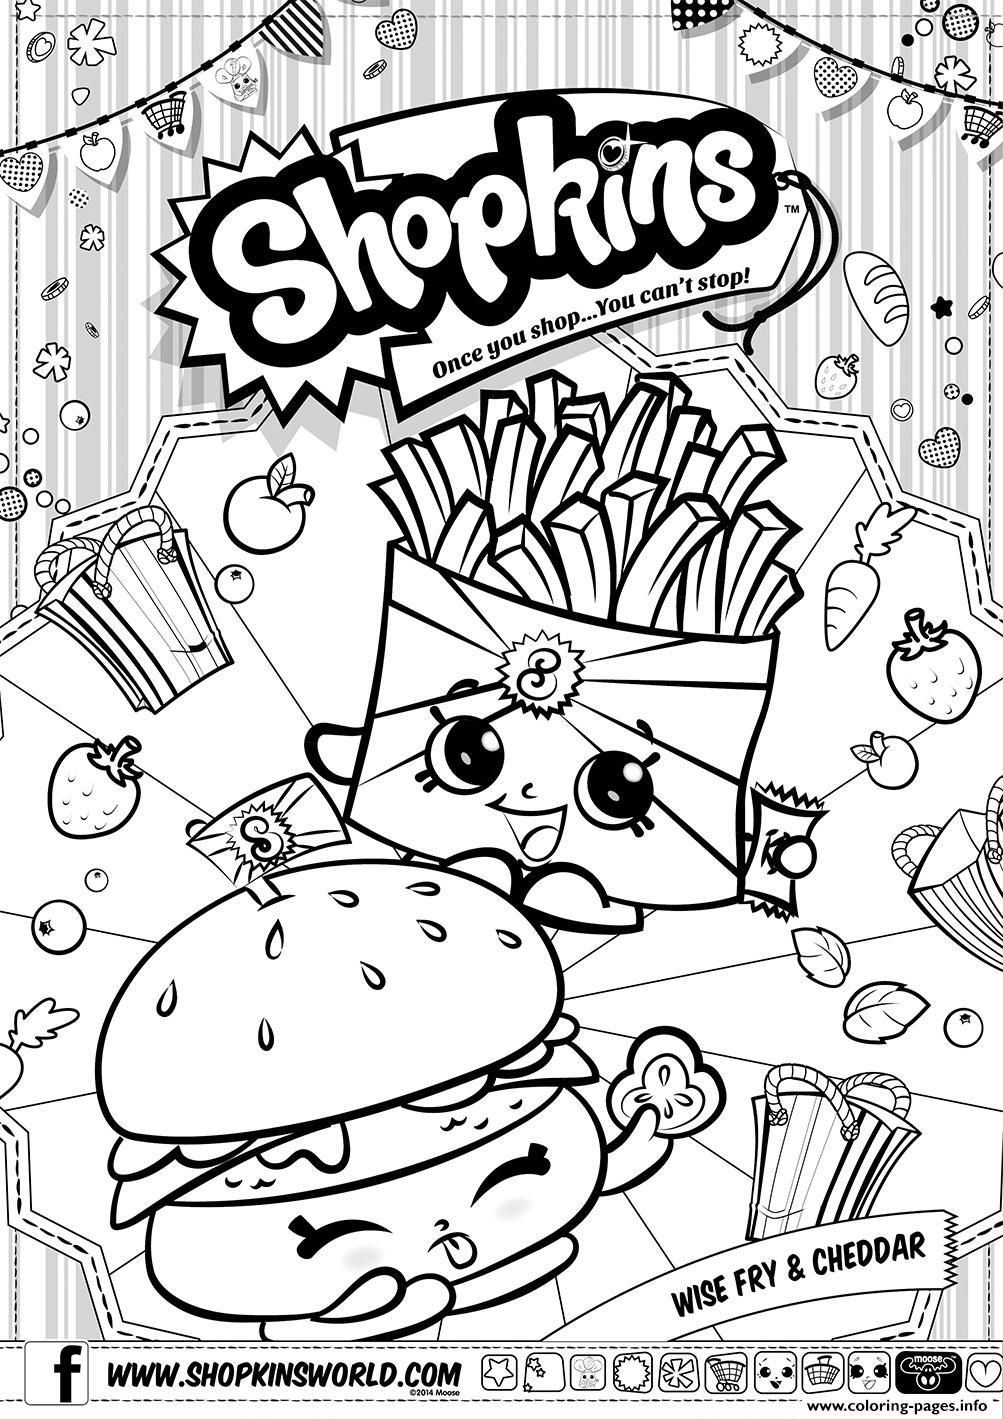 Coloring pages zorro - Print Shopkins Wise Fry Cheddar Coloring Pages